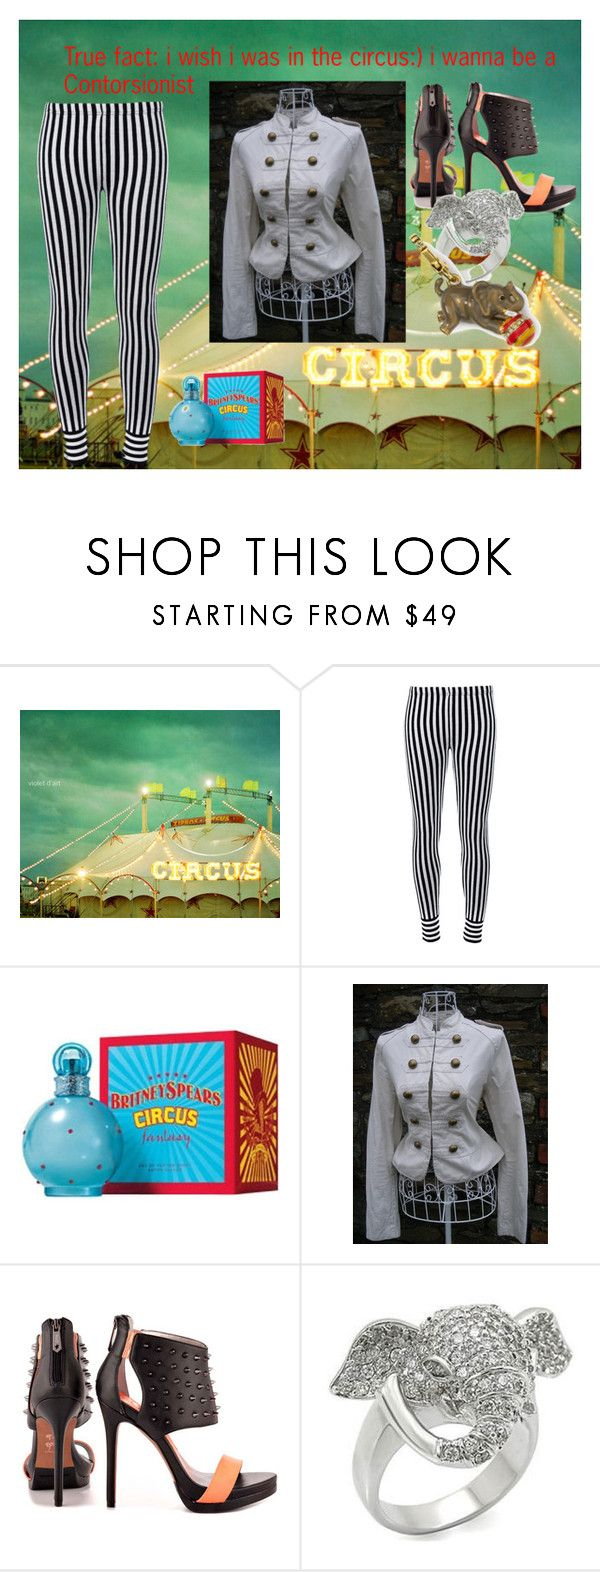 """""""True fact #3"""" by xoangel33 ❤ liked on Polyvore featuring WALL, Circus Hotel, Britney Spears, ADAM, Sam Edelman, Fantasy Jewelry Box and Juicy Couture"""